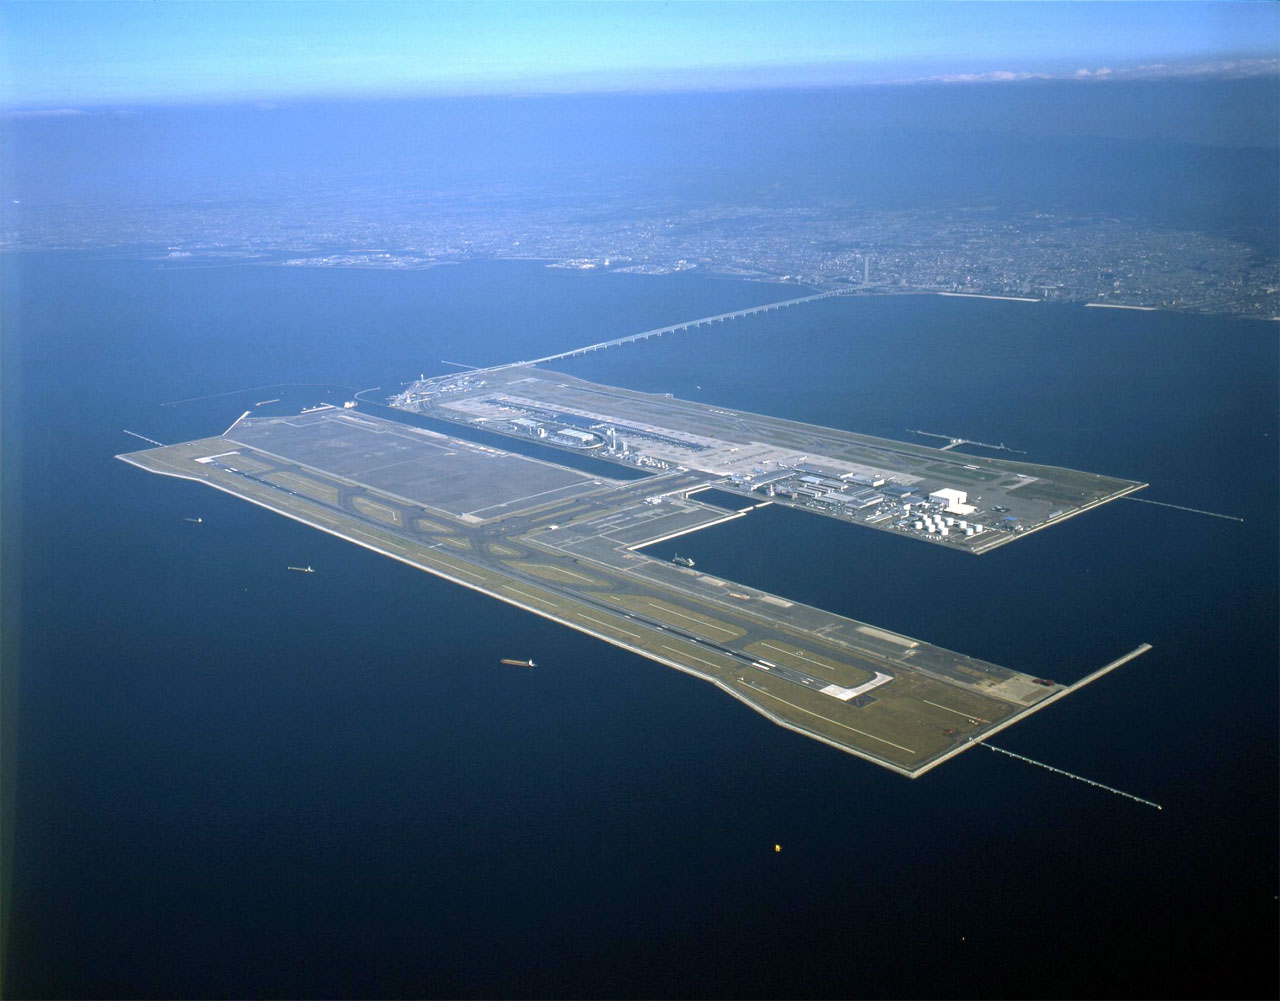 engineering feat, built on a manmade island off the coast of Japan